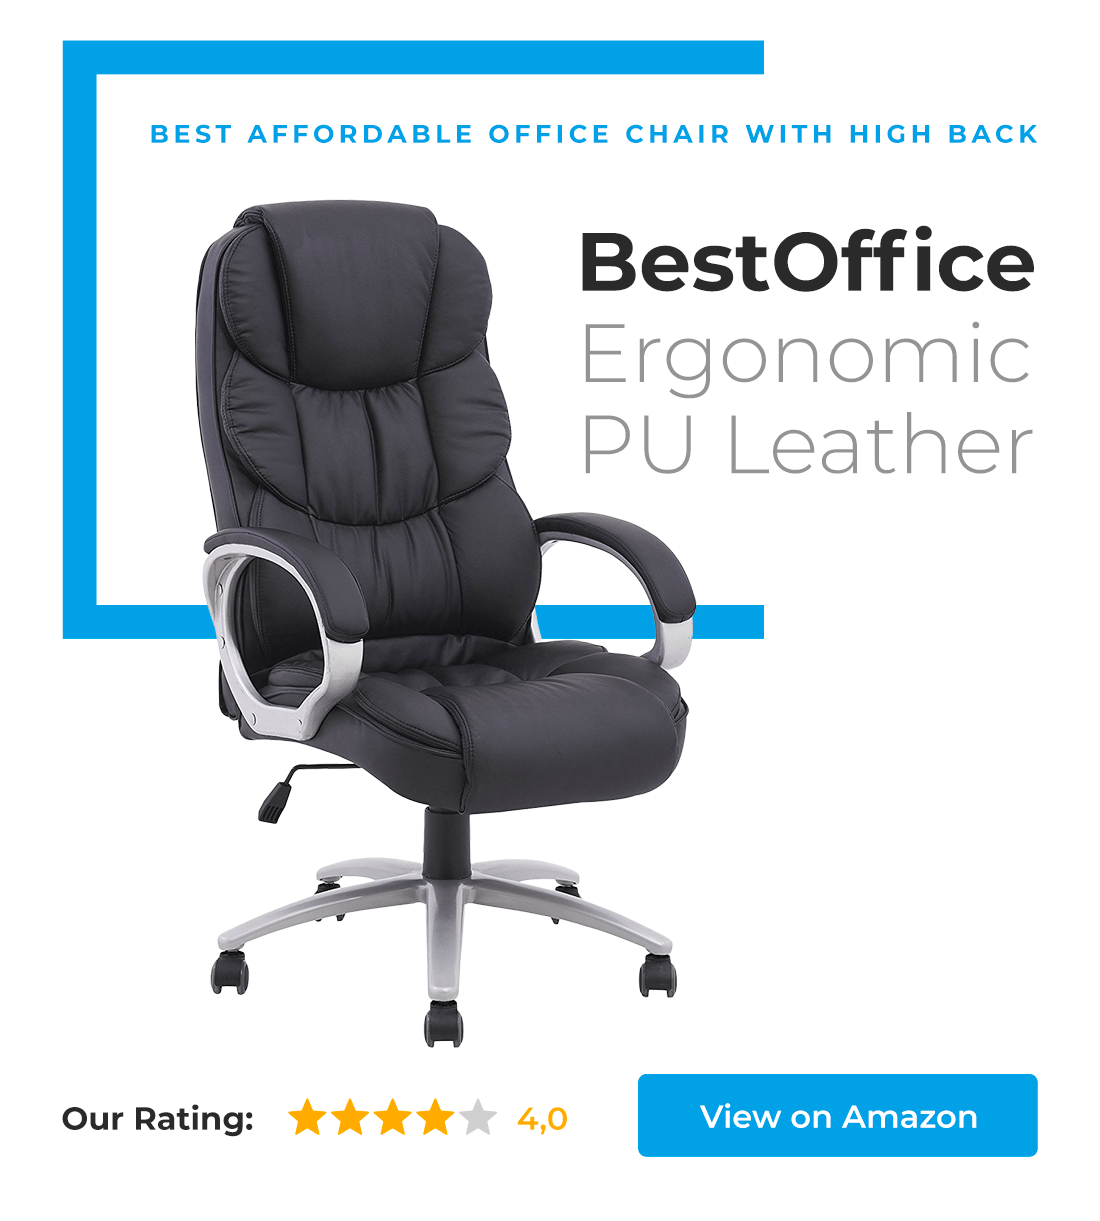 Best Affordable Office Chairs 14 New And Best Office Chairs In 2018 Under 100 200